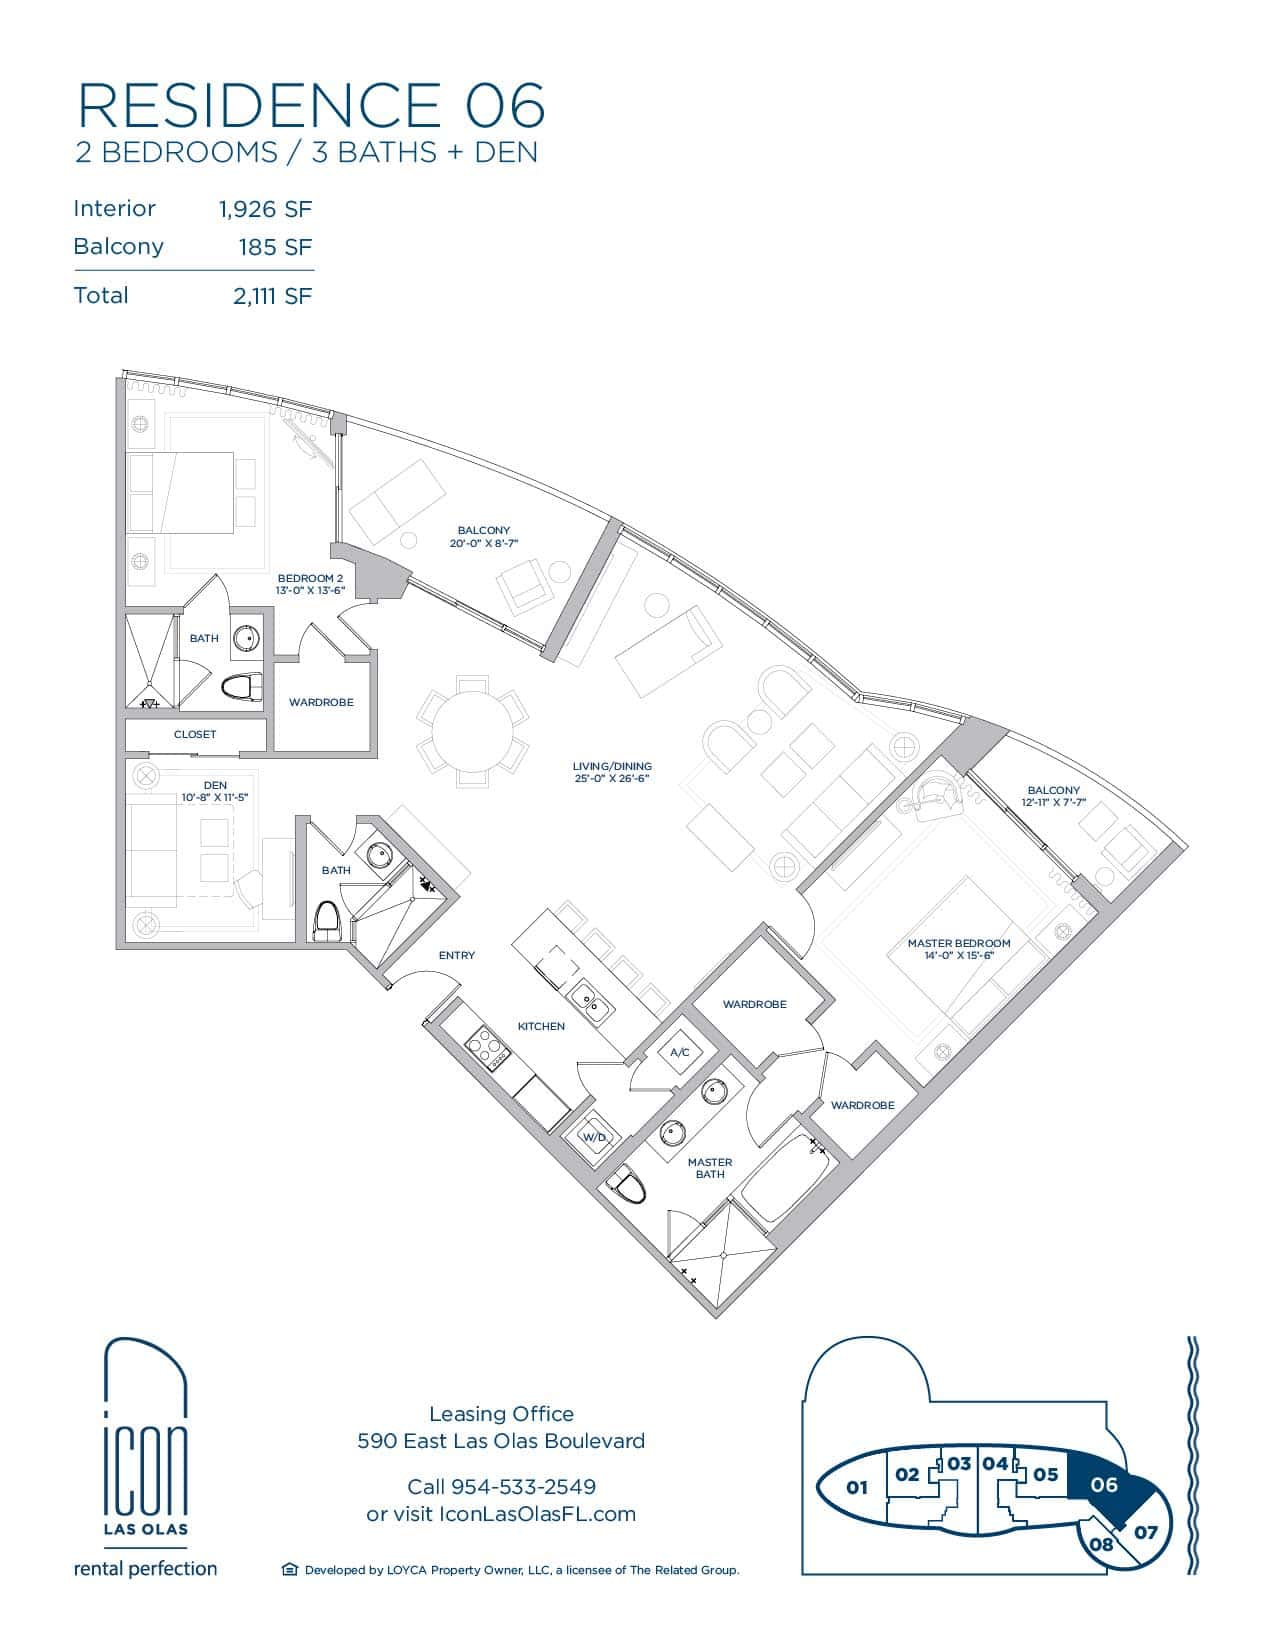 two bedroom Residence 06 floor plan image